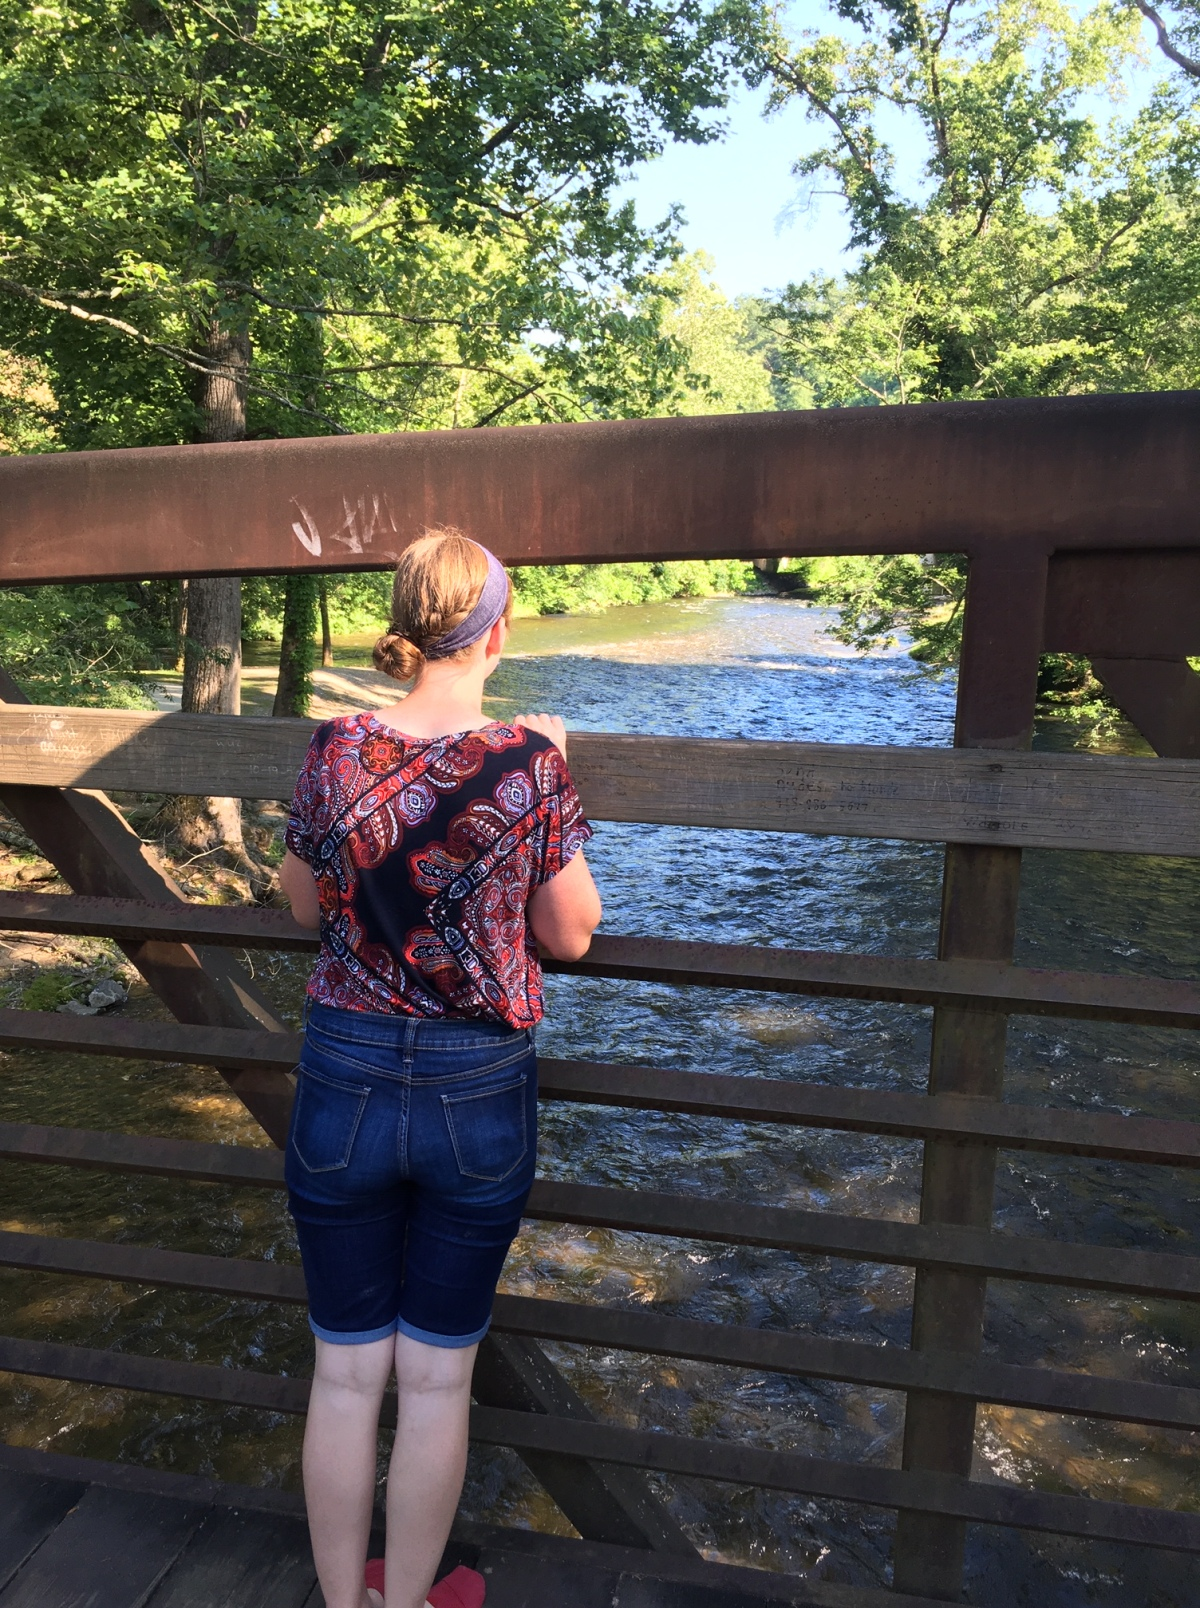 Girl on a bridge looking at the river